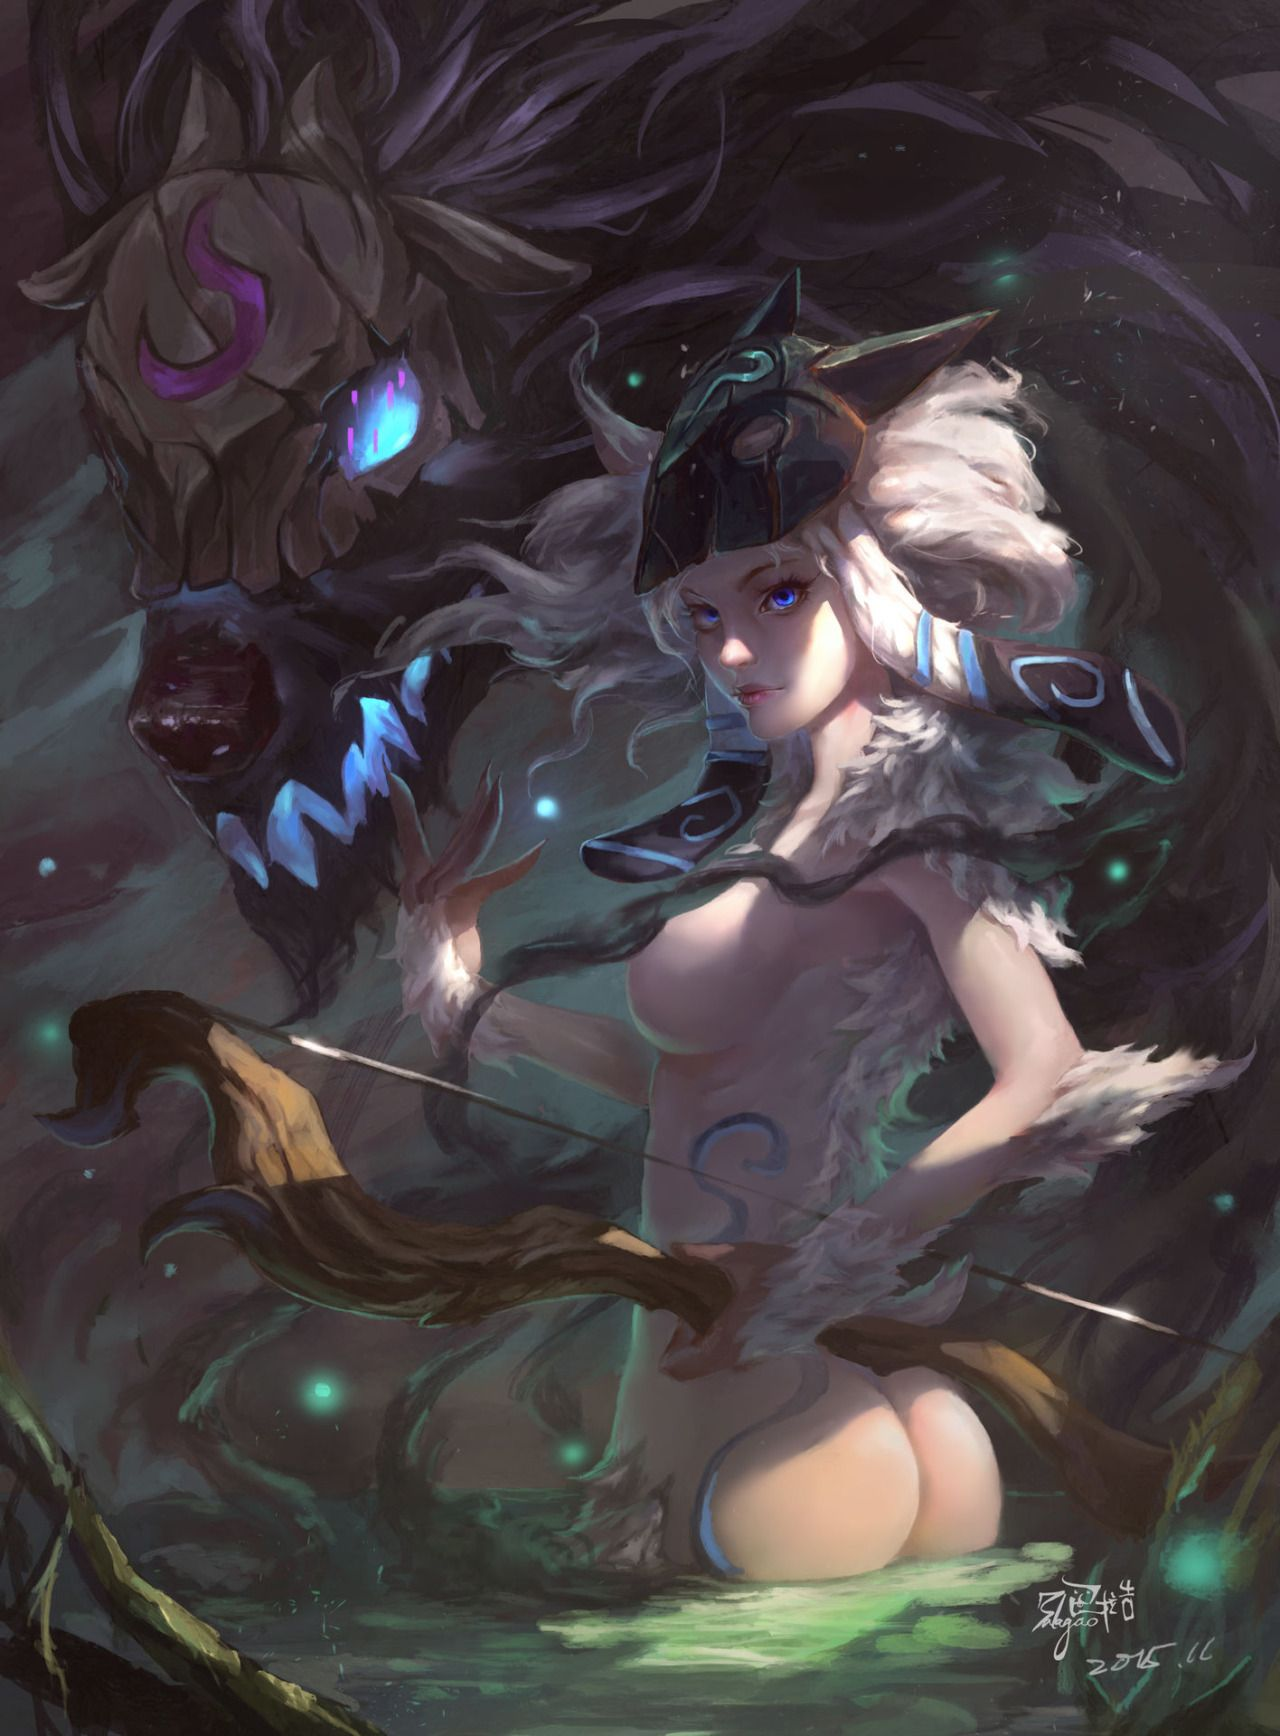 league of legends sexy girls kindred league of legends anime league of legends sexy girls kindred league of legends